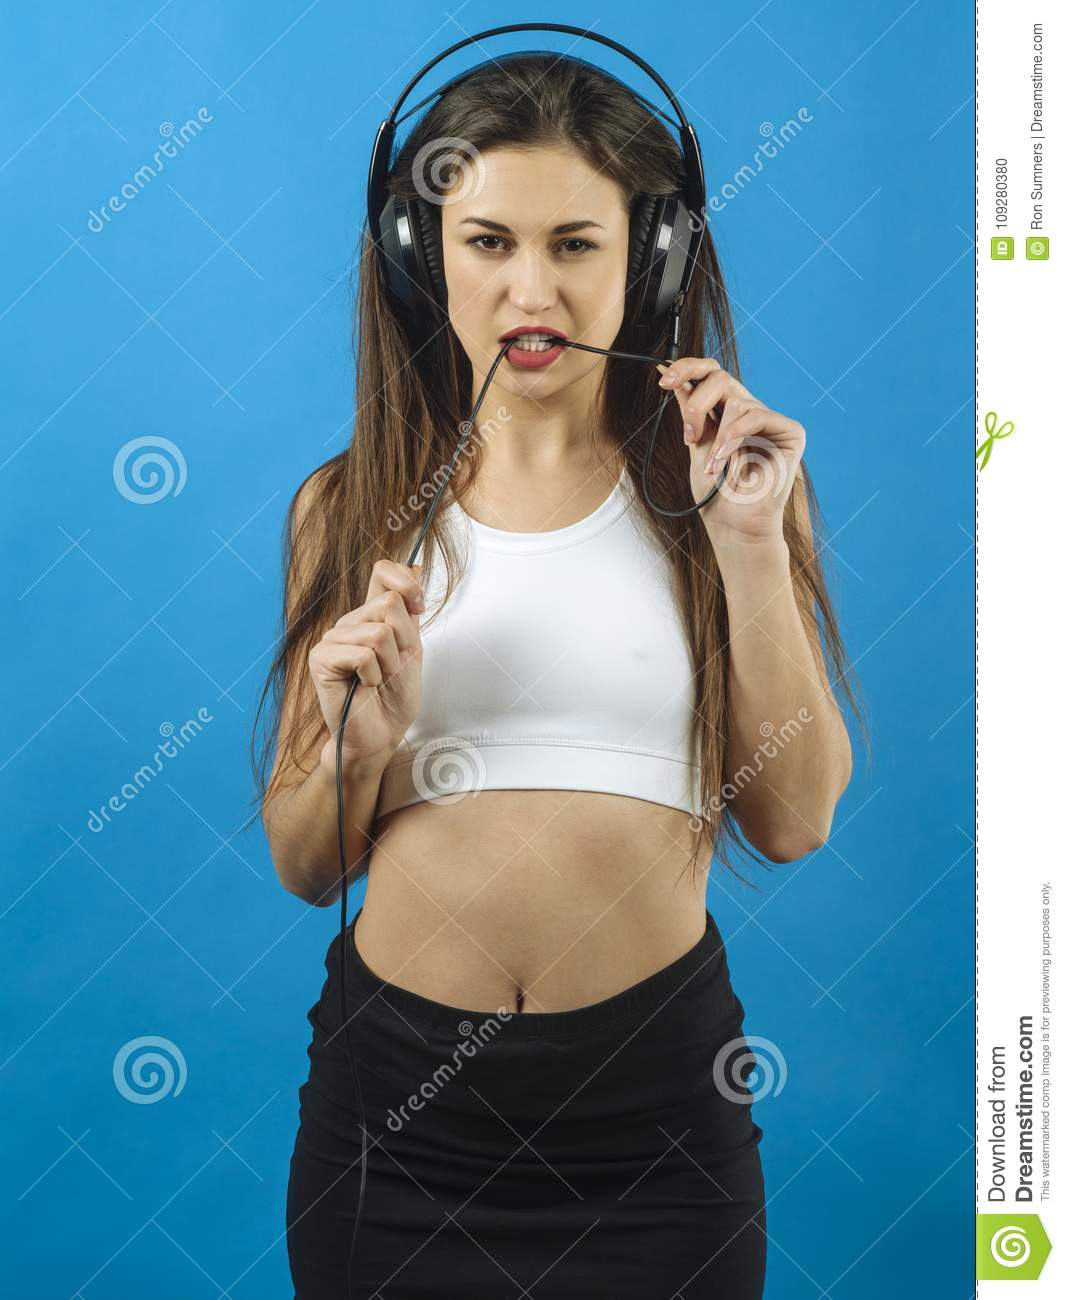 fun woman listening to music with headphones